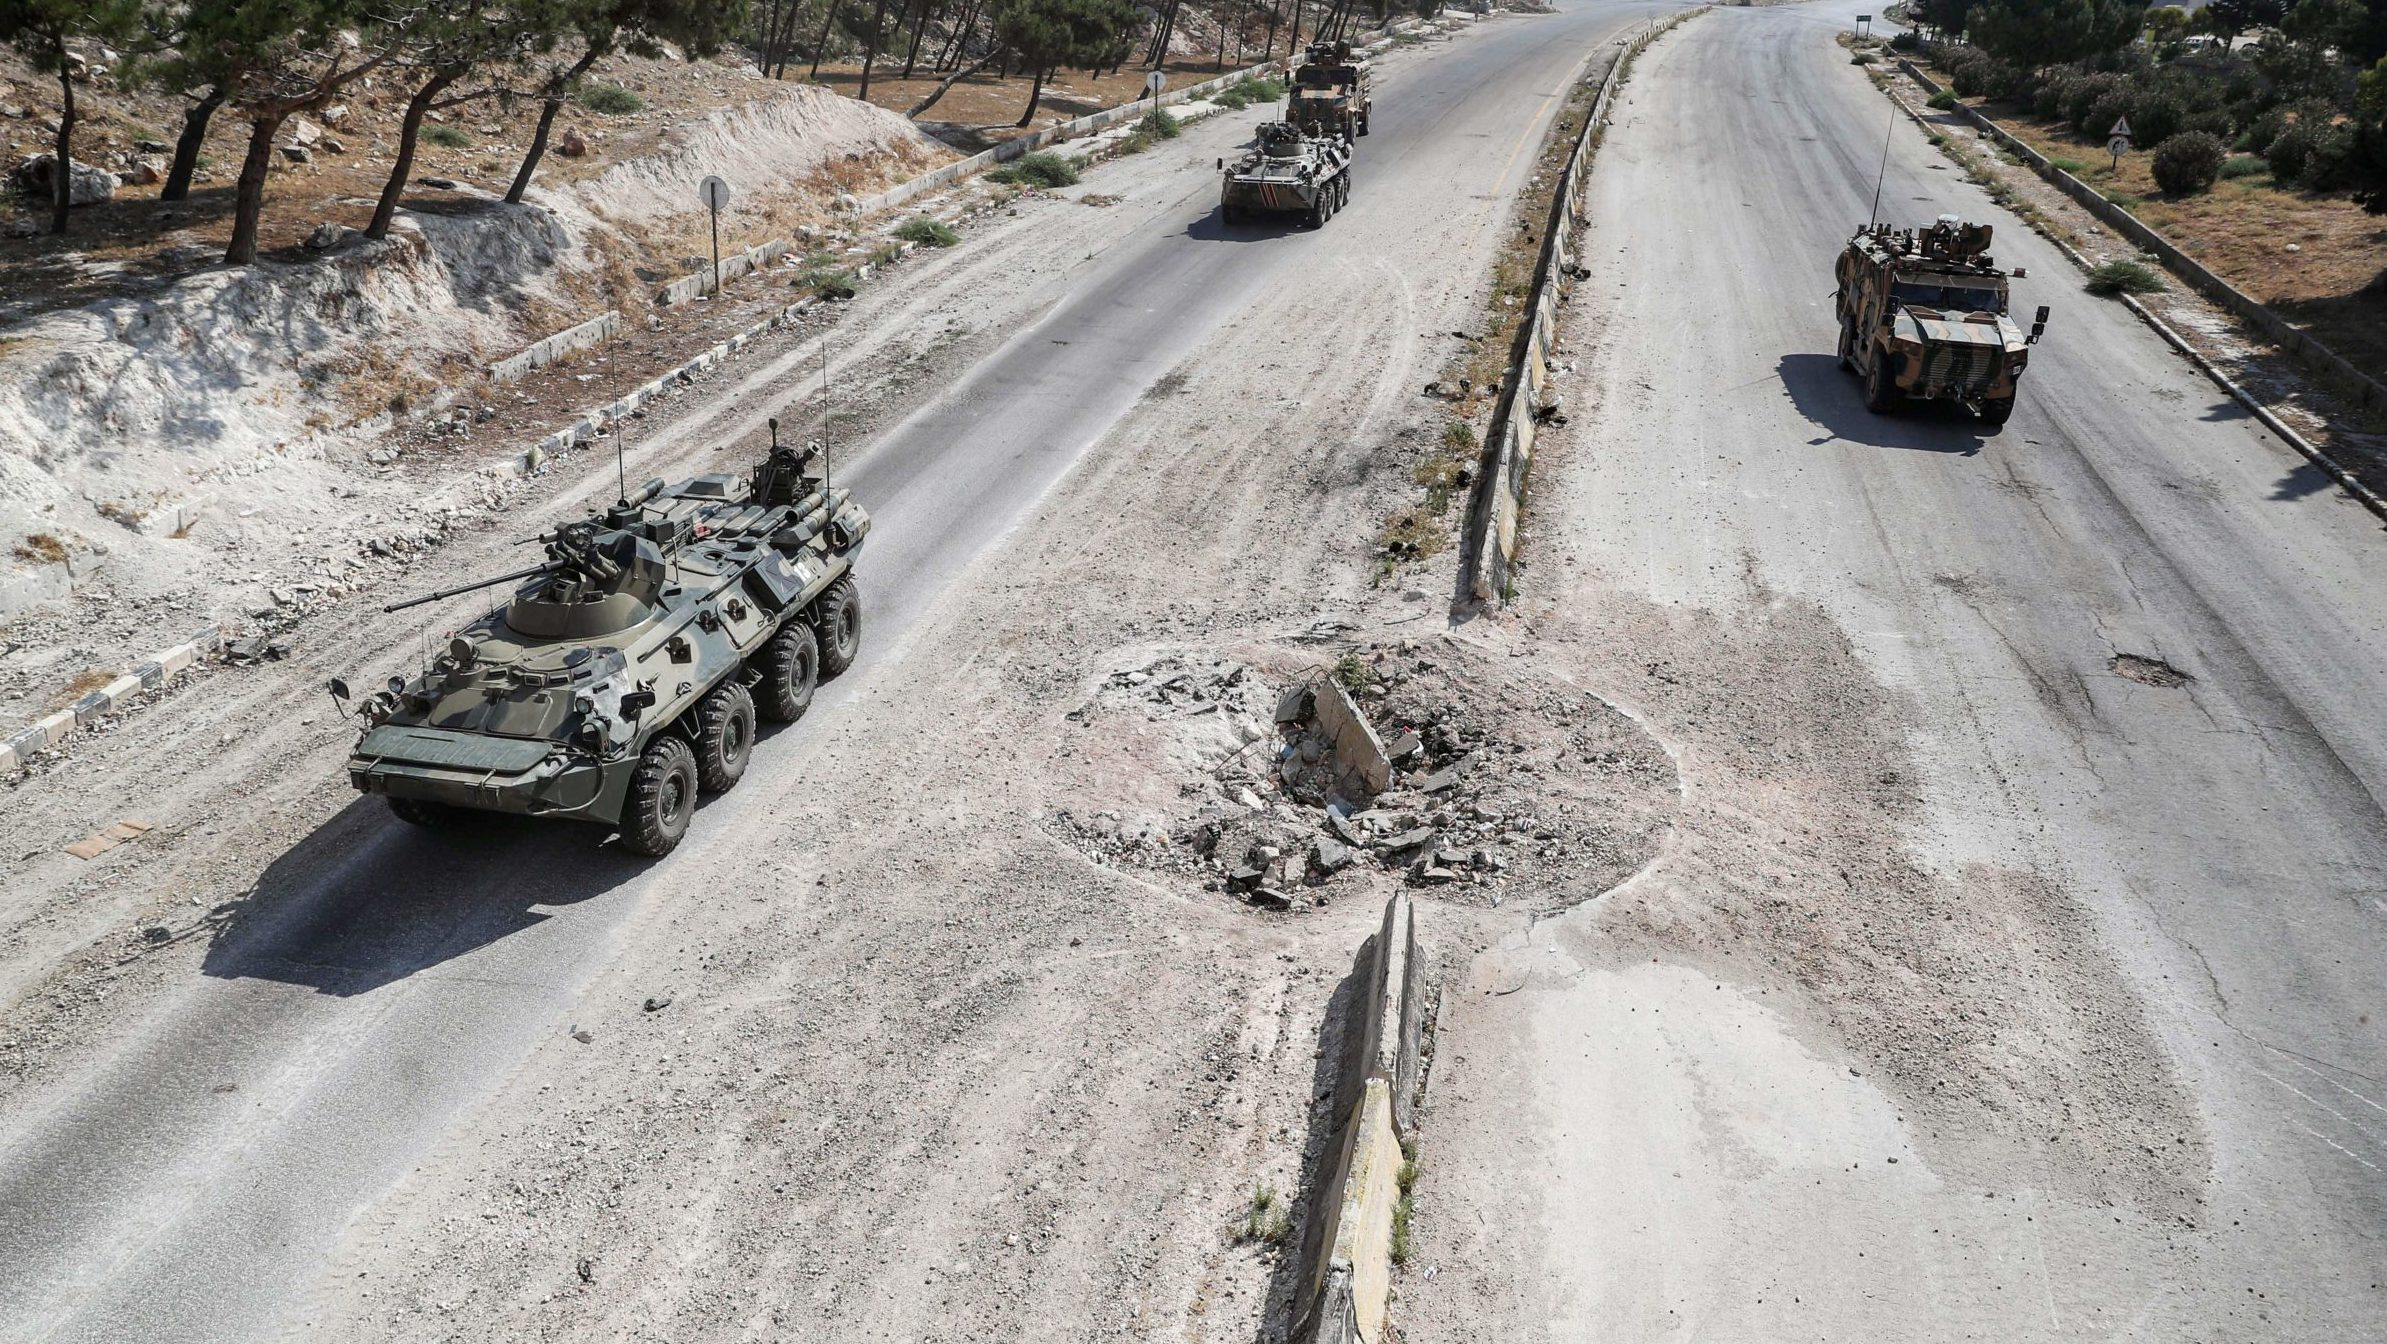 Russia Answers Idlib Roadside Bombing with Airstrikes